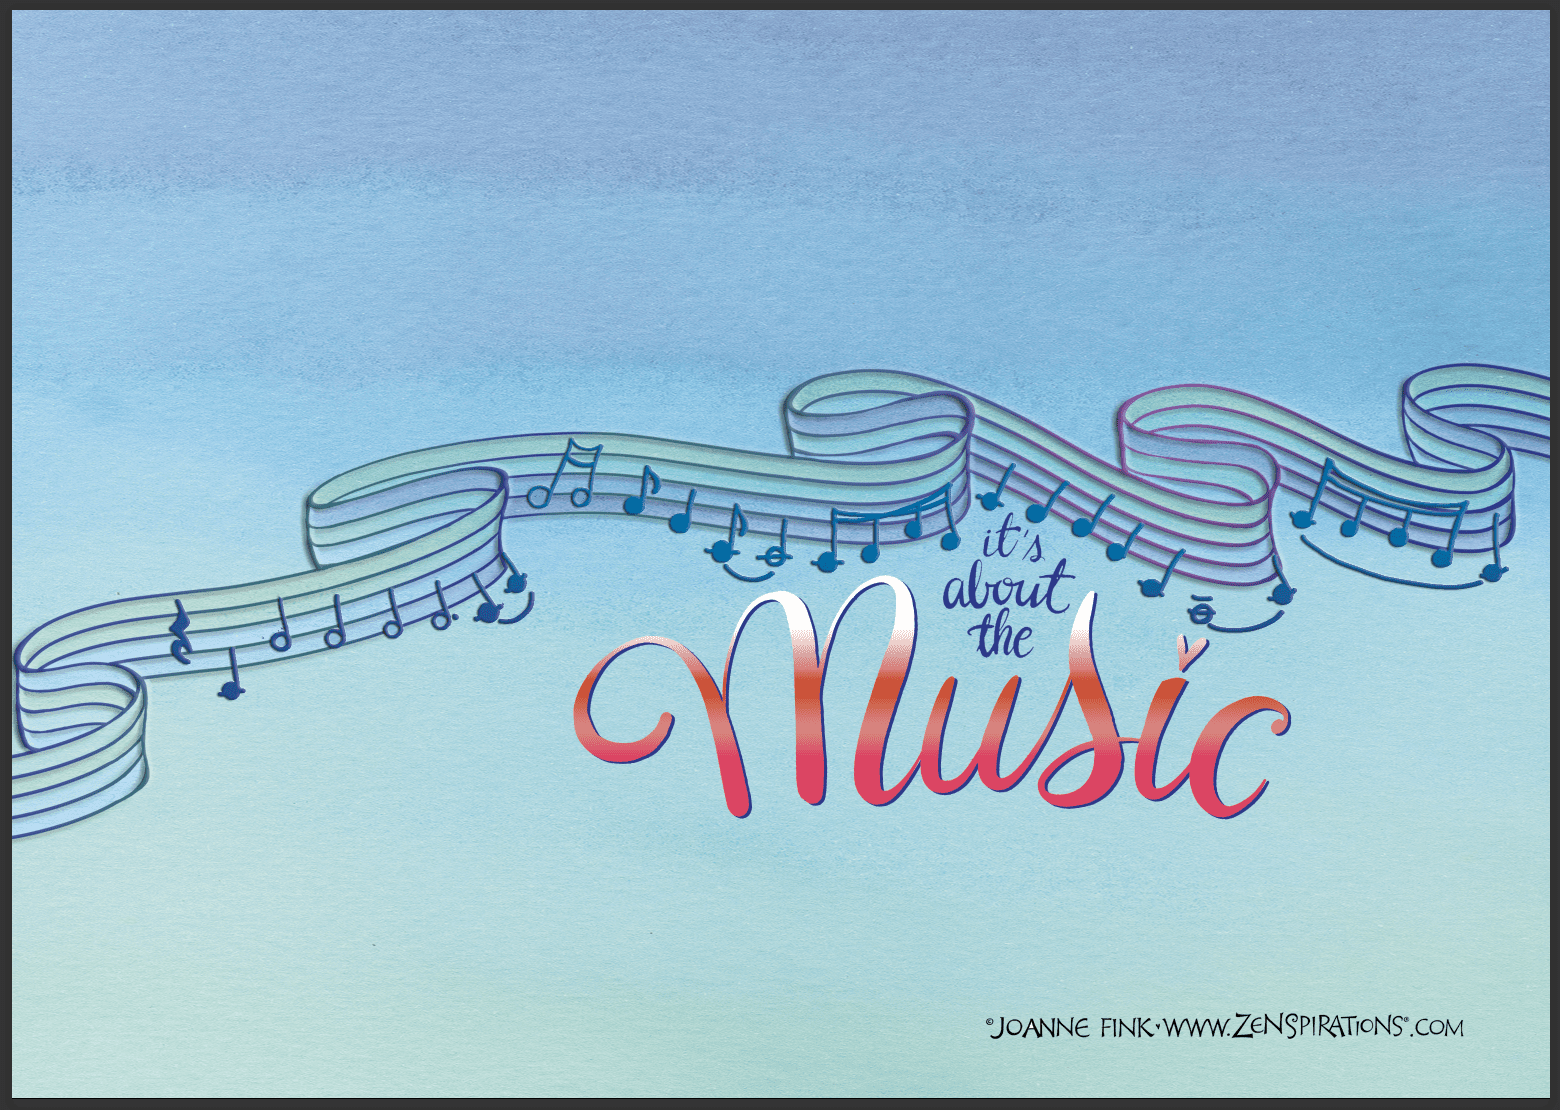 zenspirations_by_joanne_fink_blog_11_29_16_music